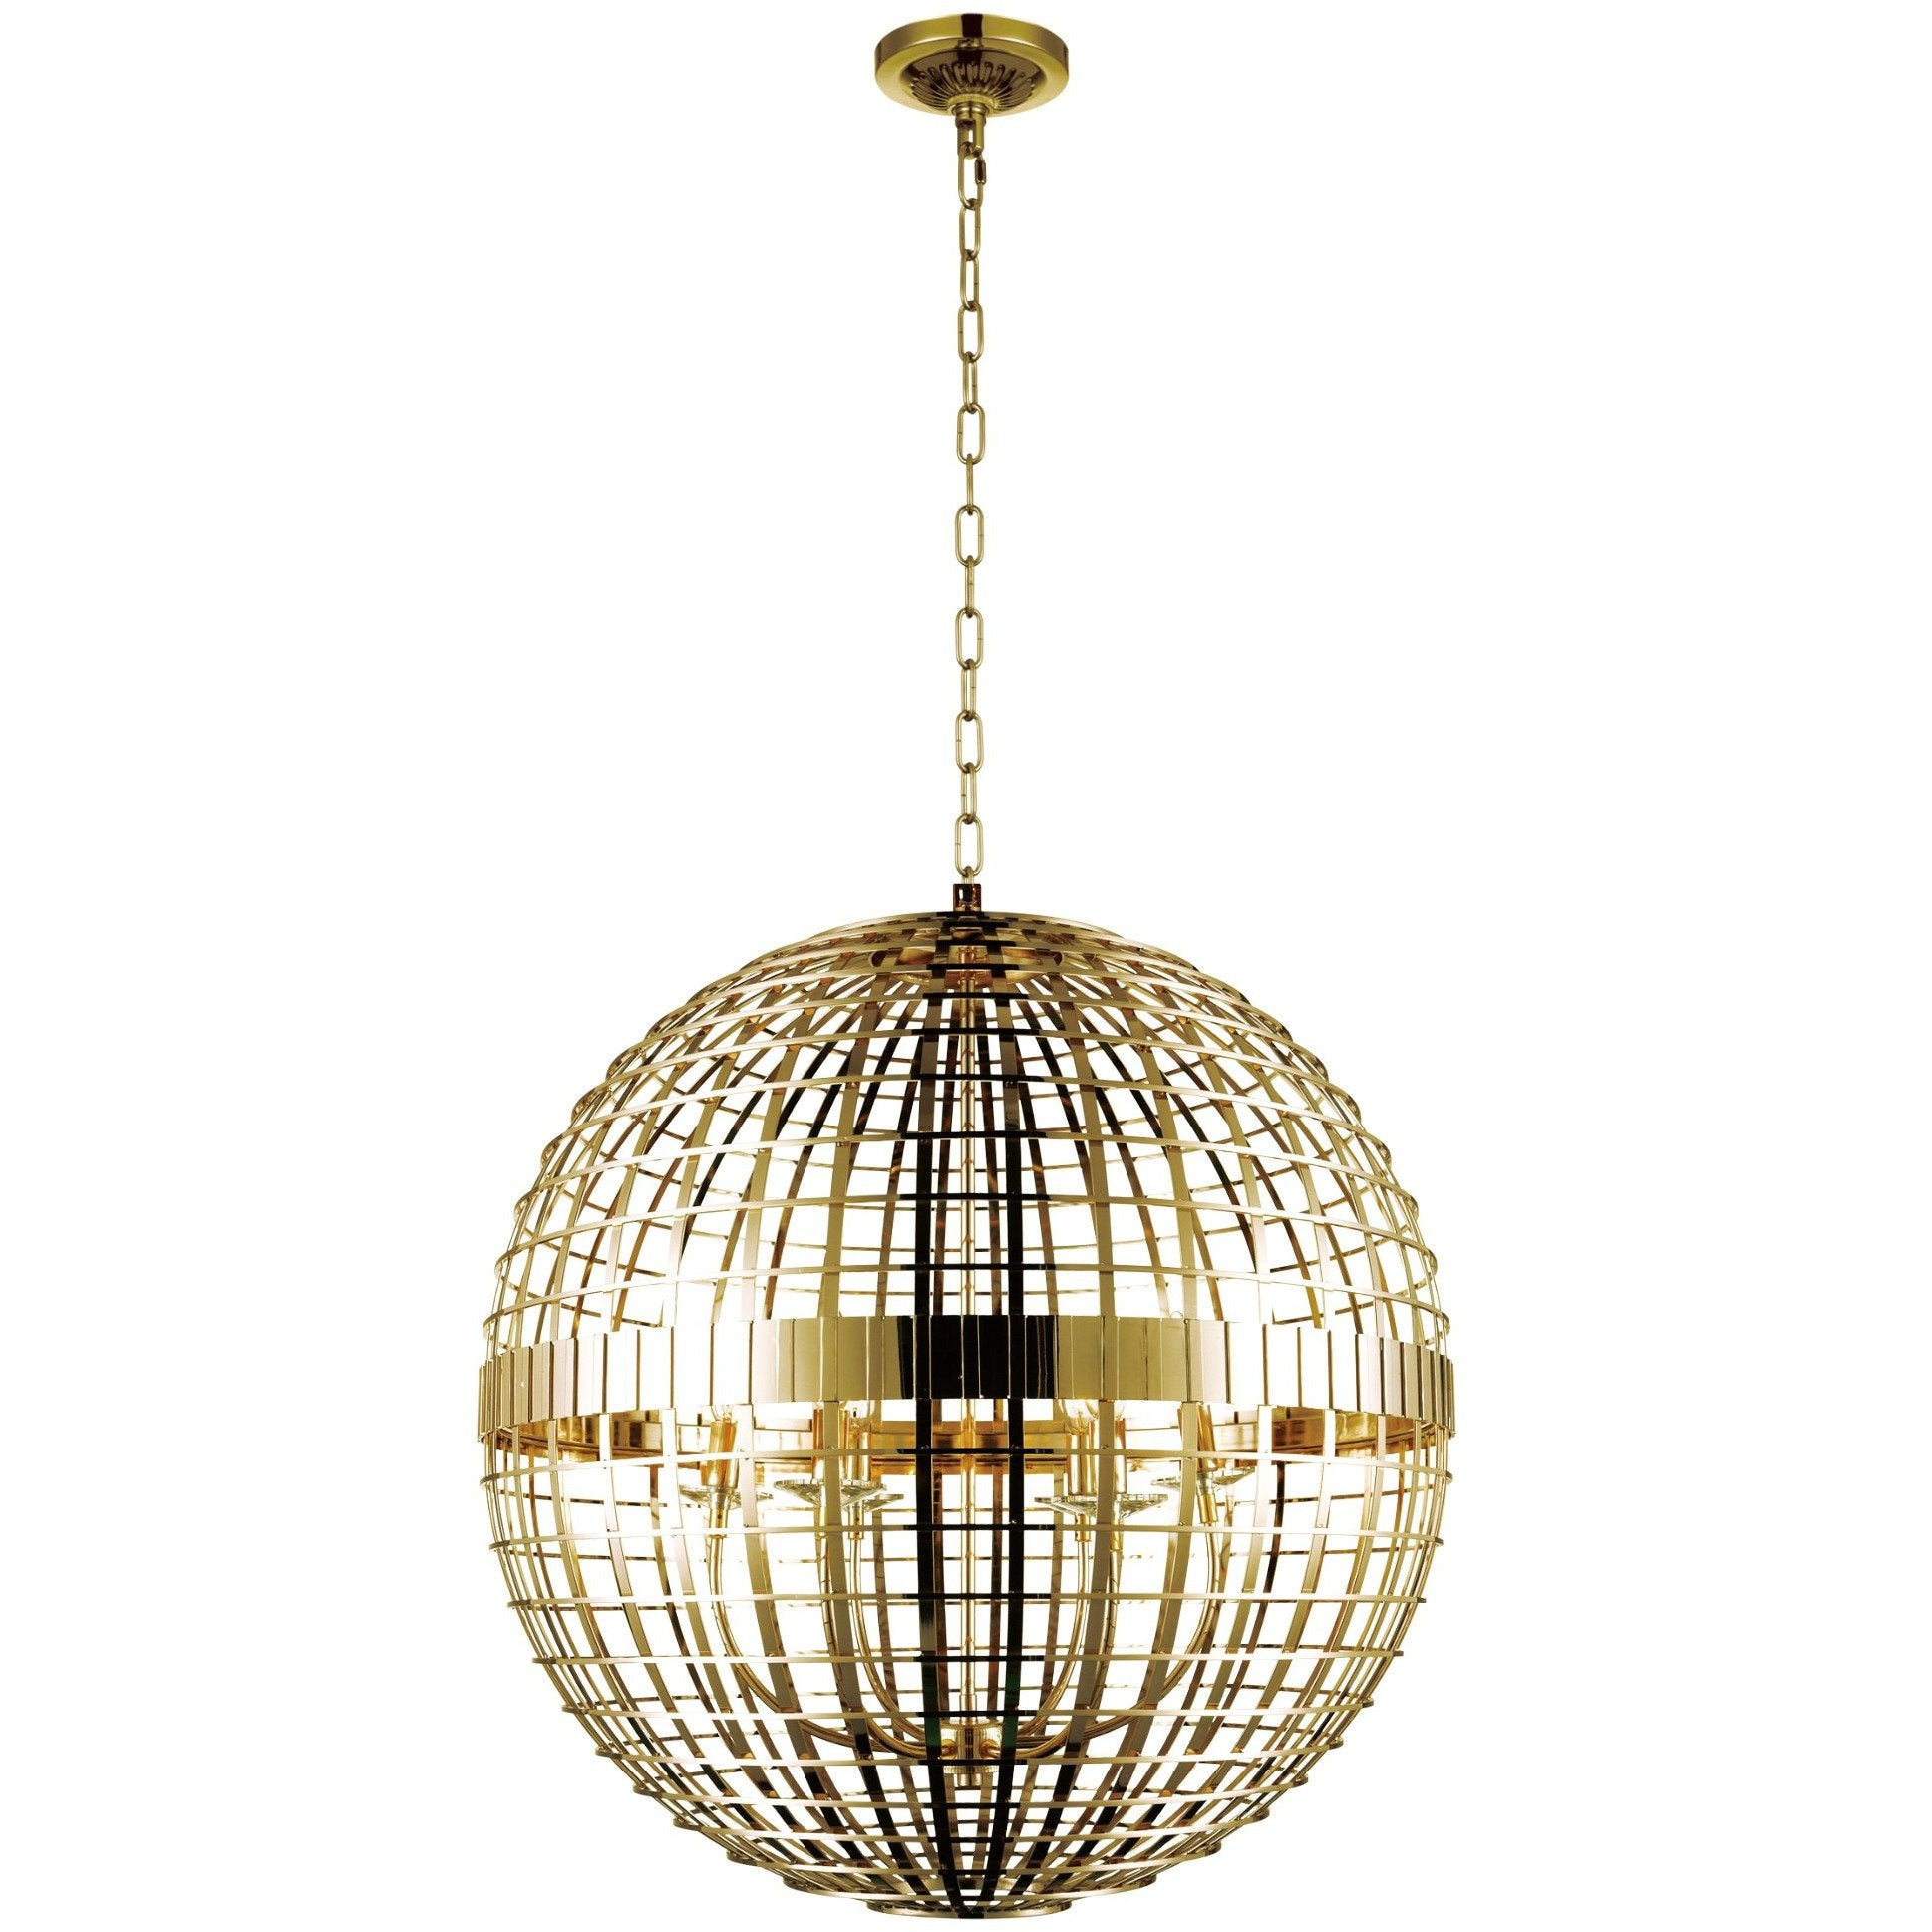 CWI Lighting Chandeliers Gold Niya 6 Light Chandelier with Gold finish by CWI Lighting 9974P28-6-608